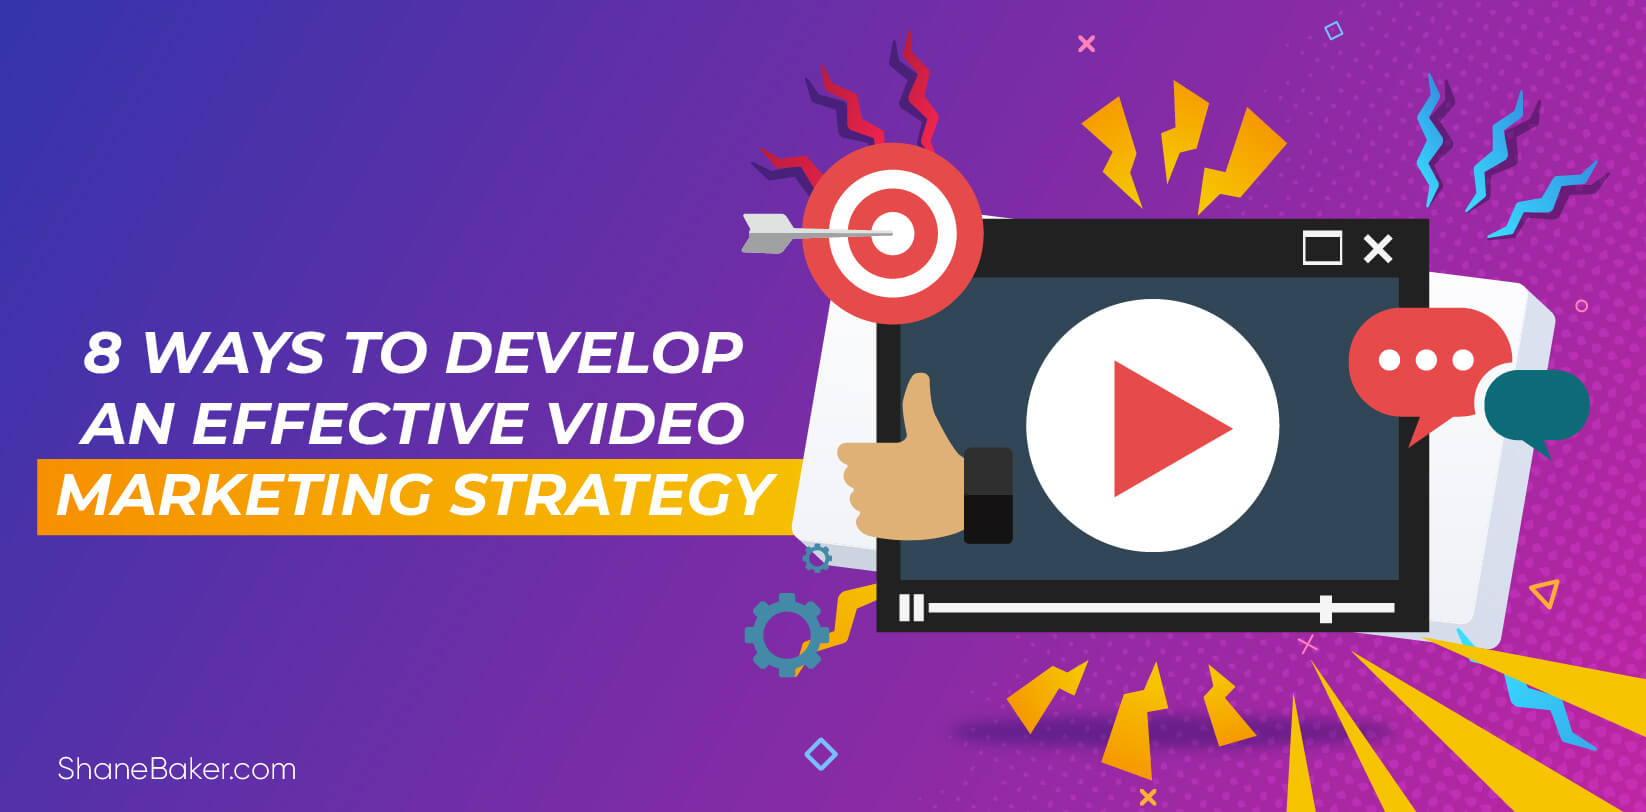 8 Ways to Develop an Effective Video Marketing Strategy